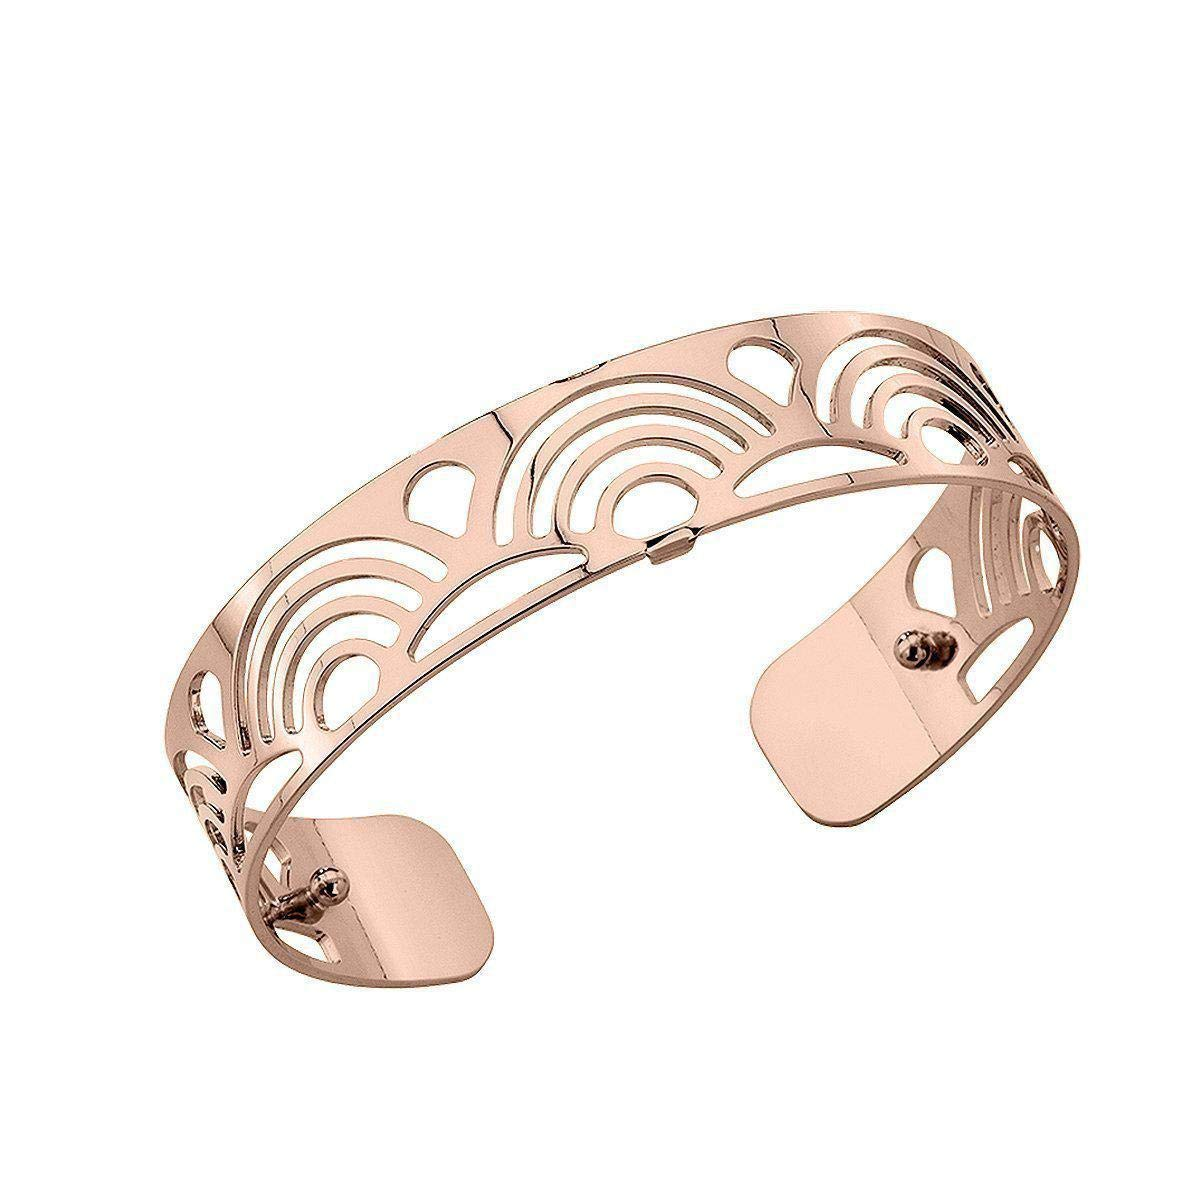 Les Georgette Poisson 14mm Cuff in Rose Gold